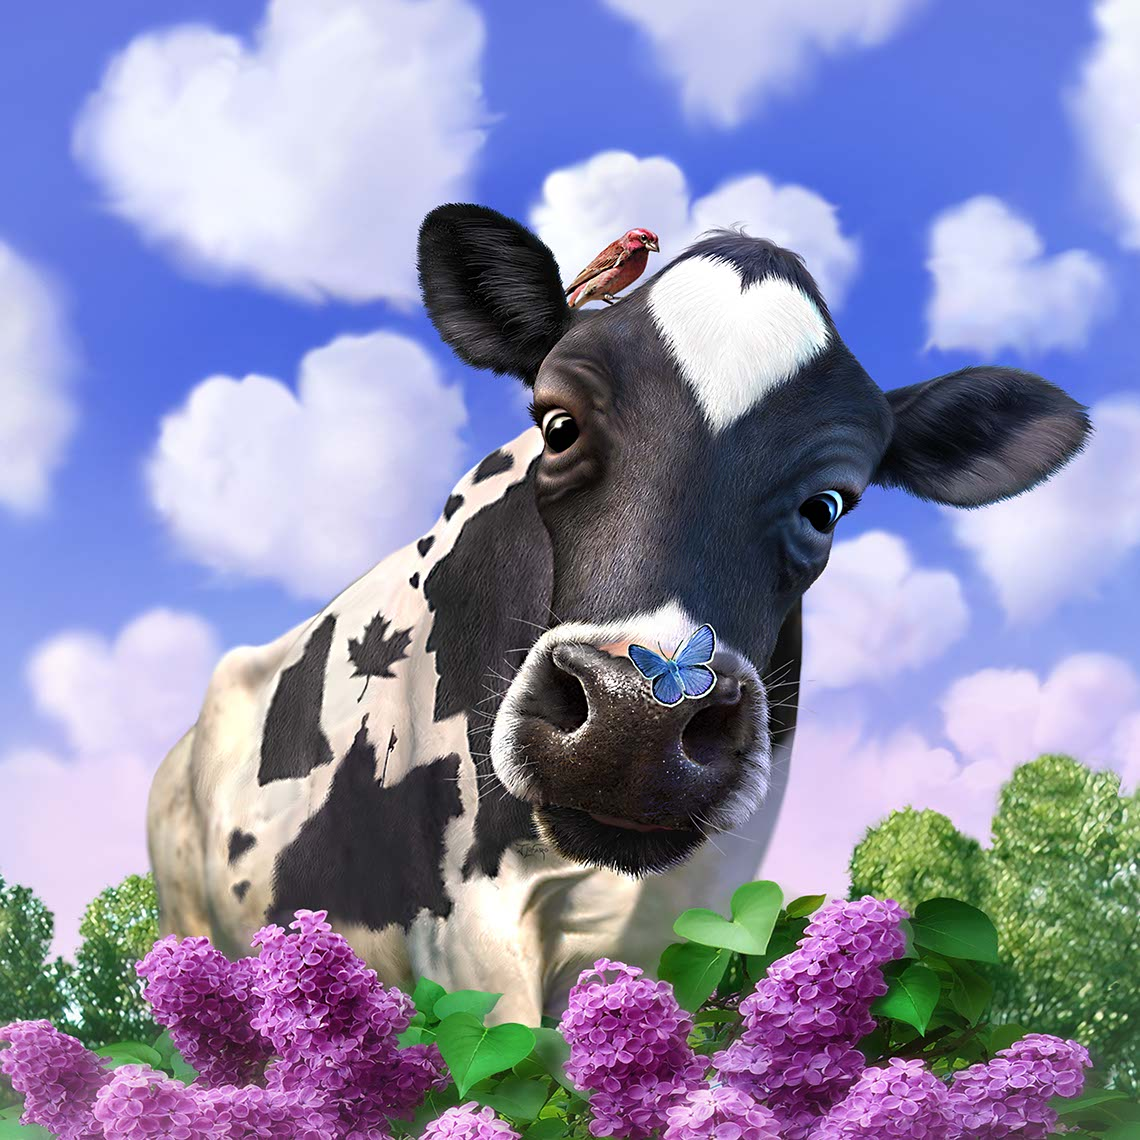 illustration-animals and nature-cow with heart markings  in field-Jerry LoFaro